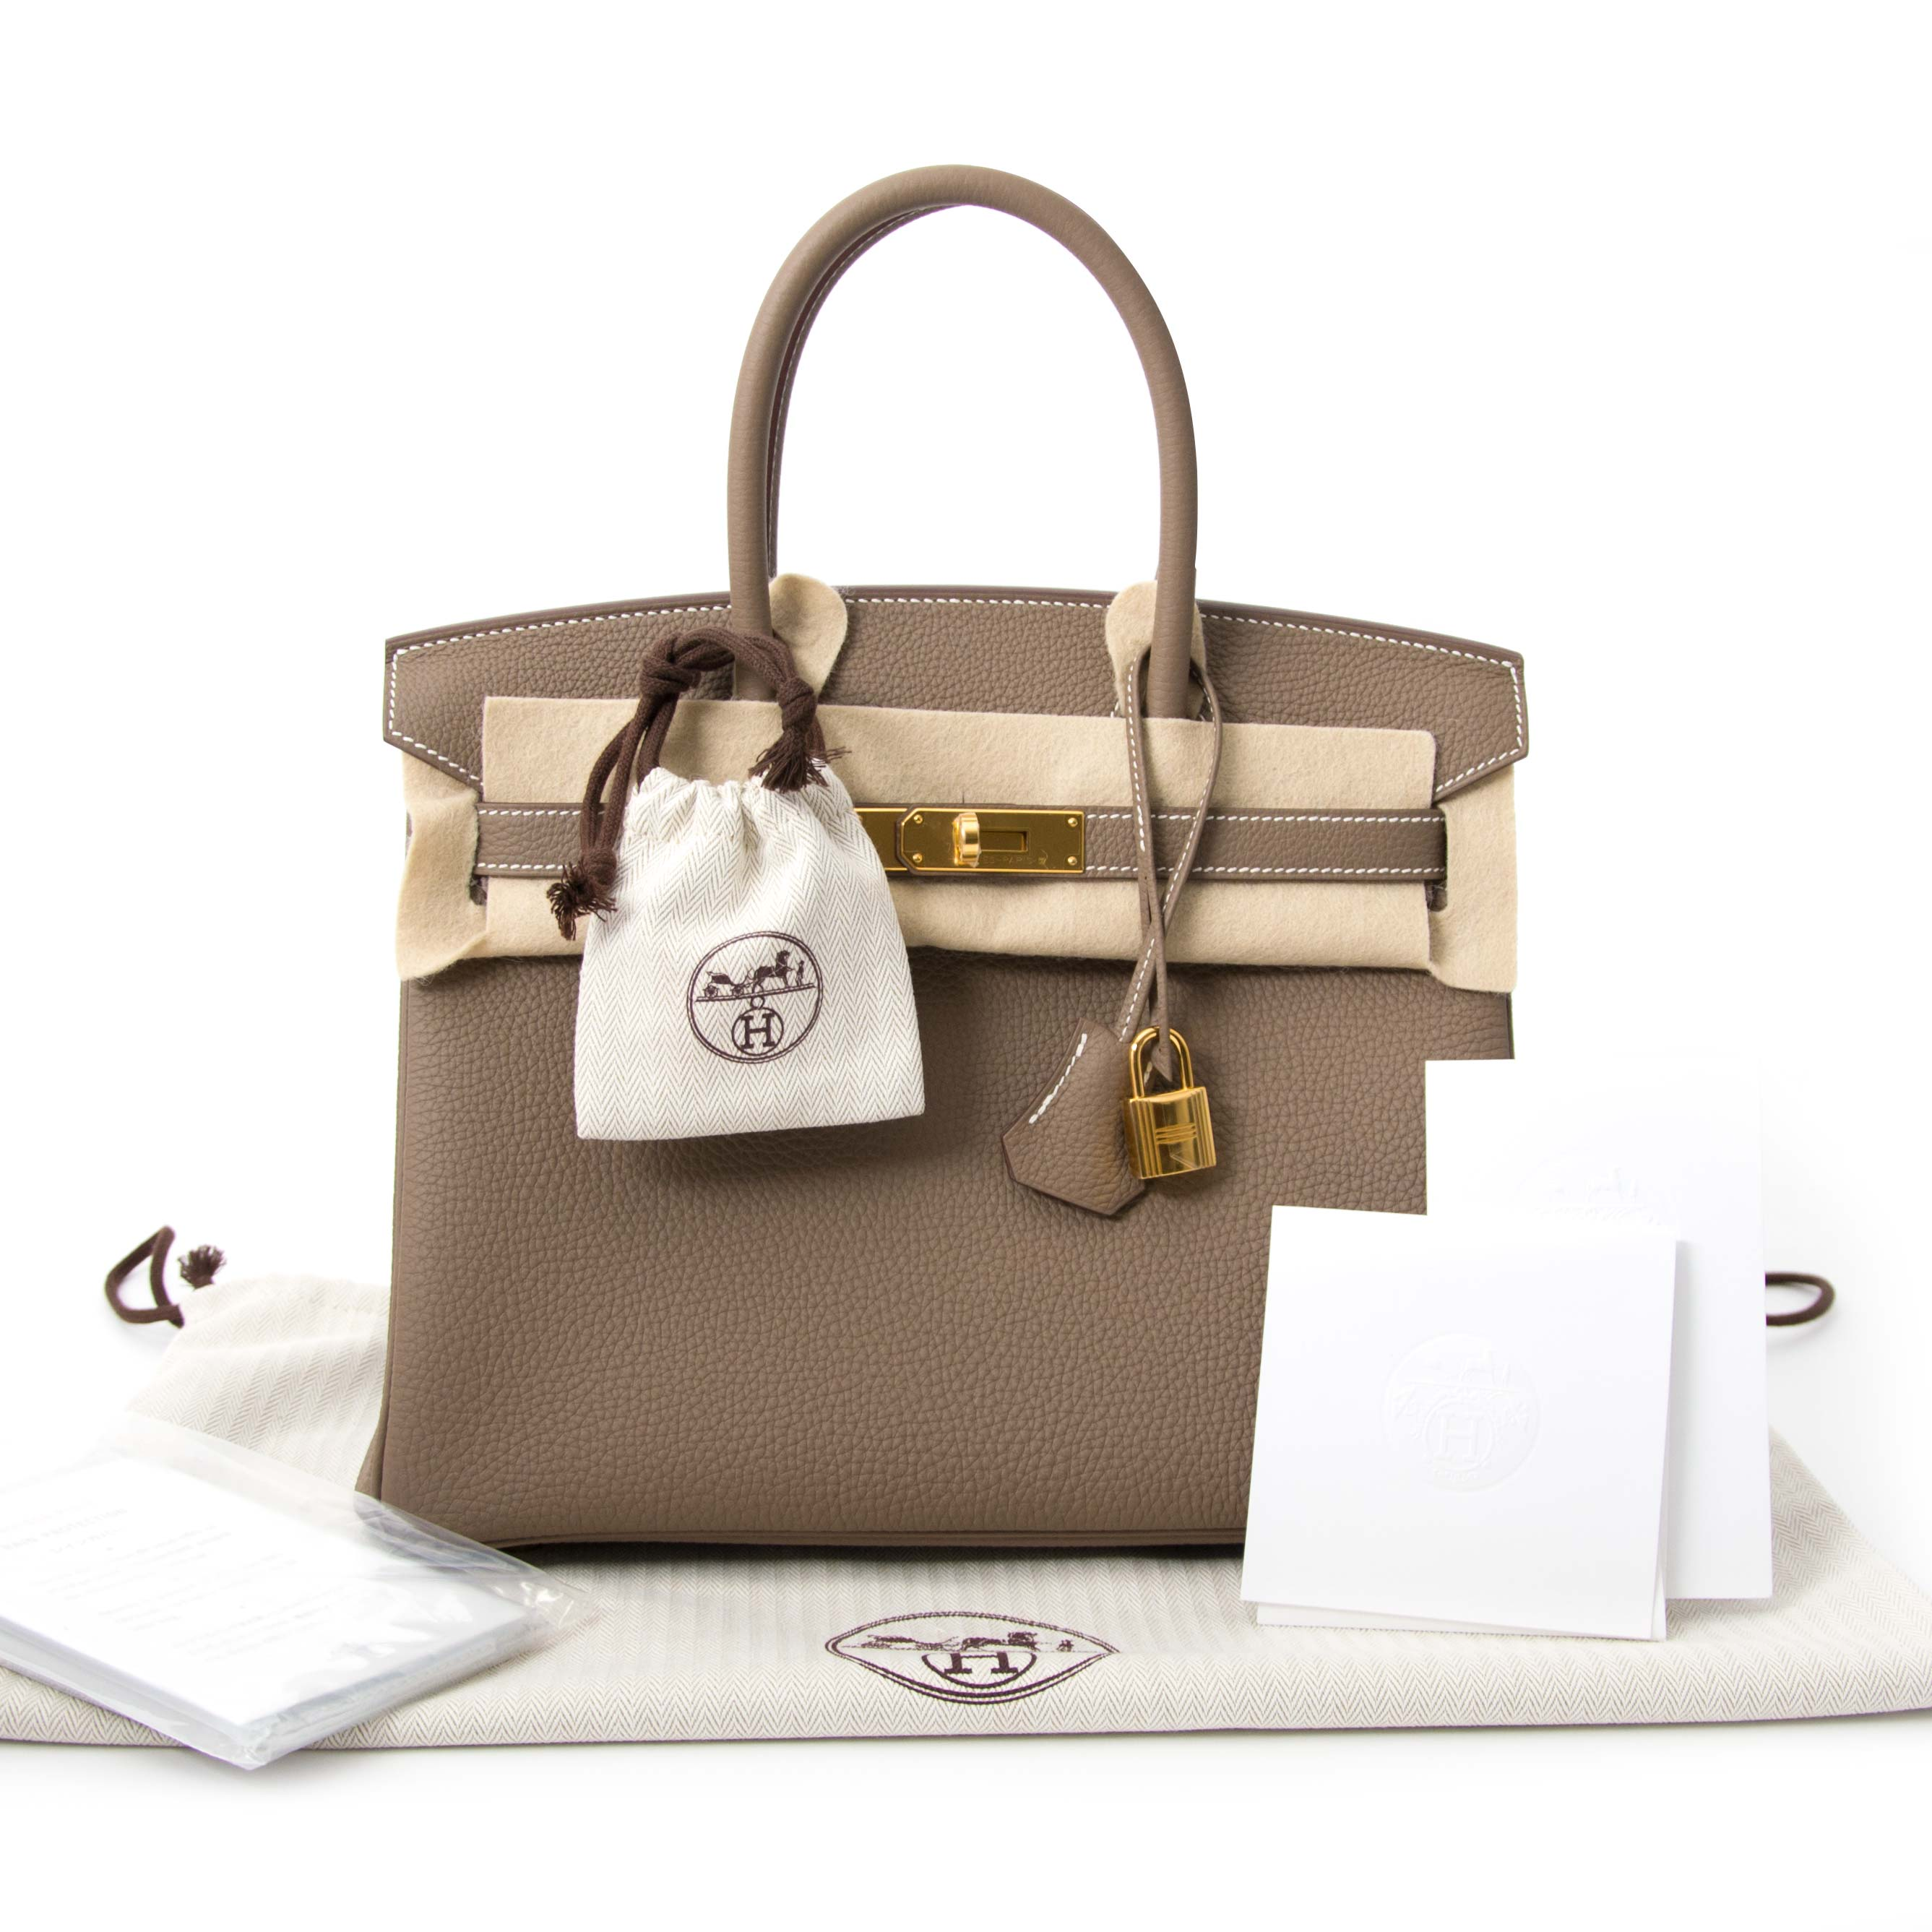 Buy and sell your authentic Hermès Birkin 30 Etoupe Togo GHW